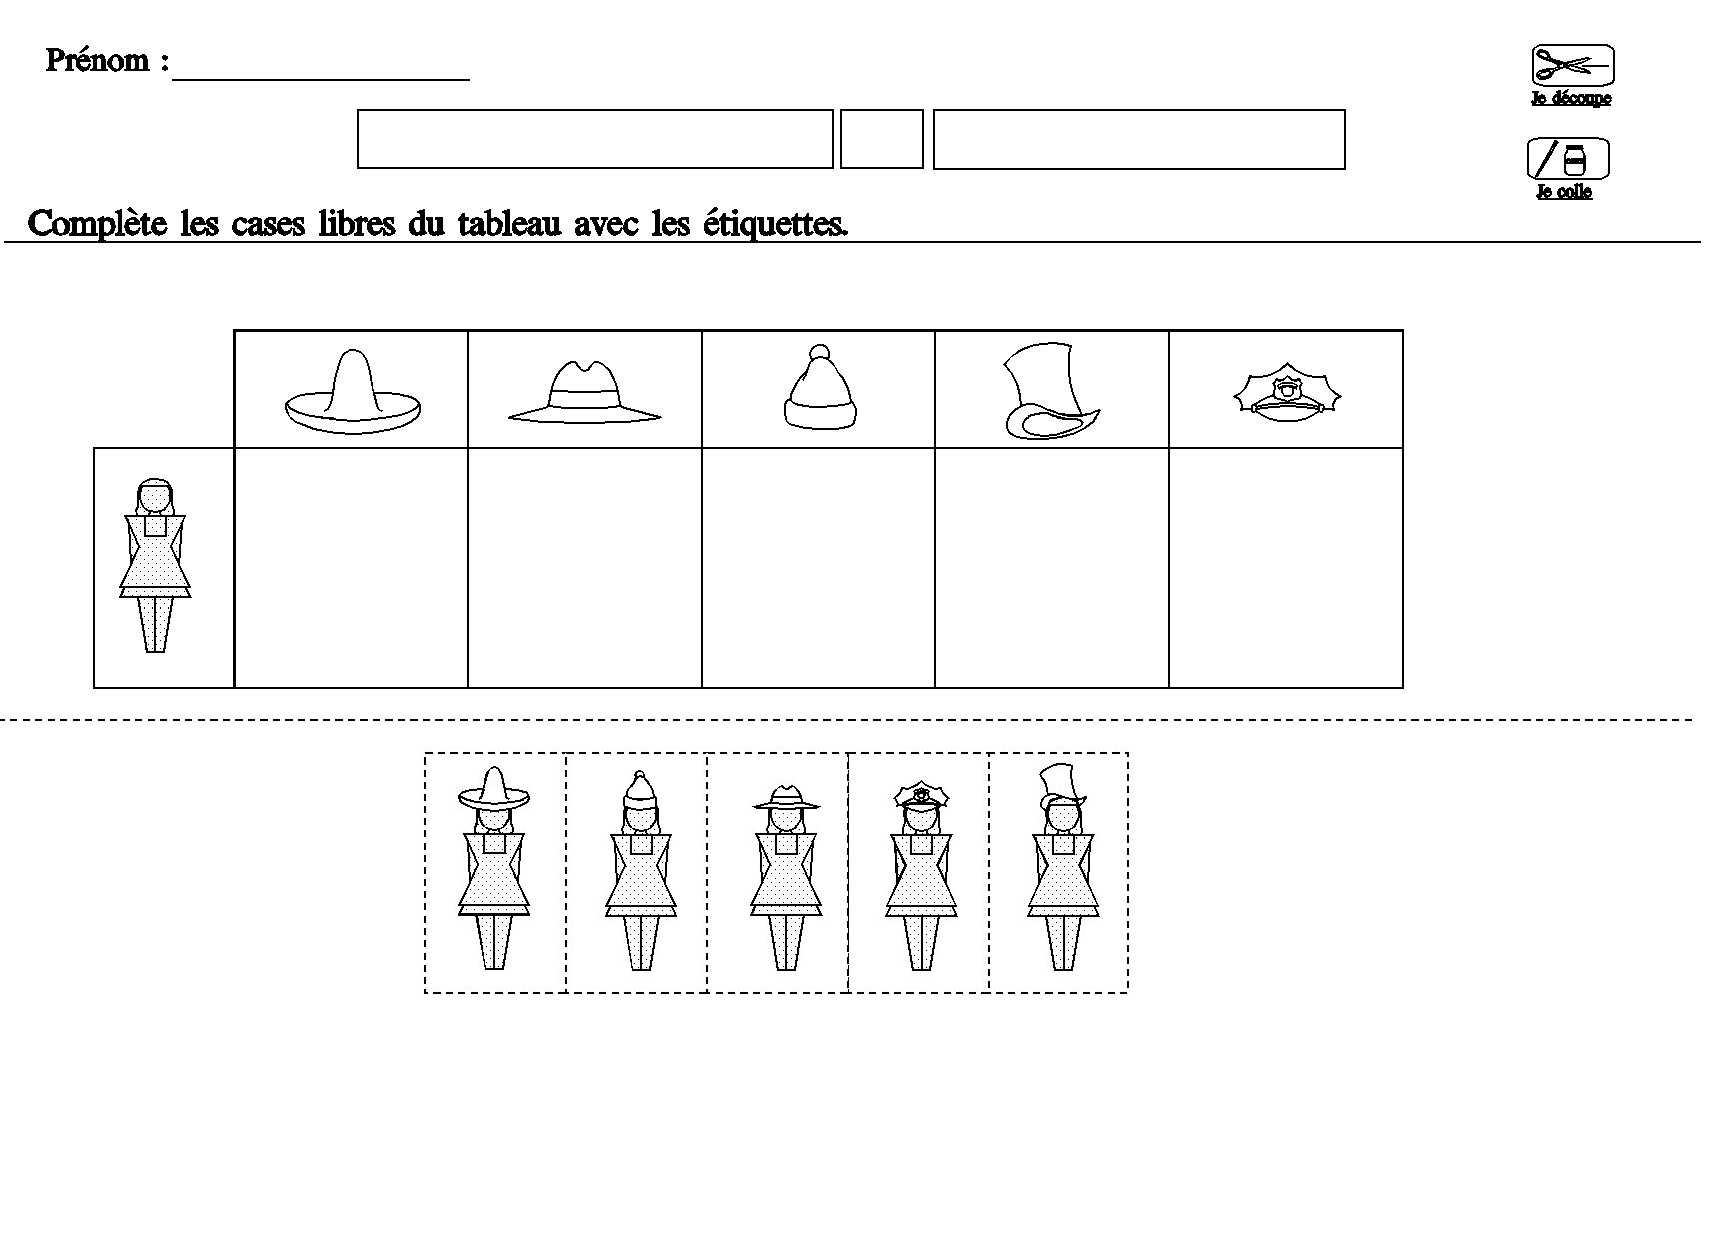 Turbo tableau double entrees pour maternelle moyenne section grande section PN51